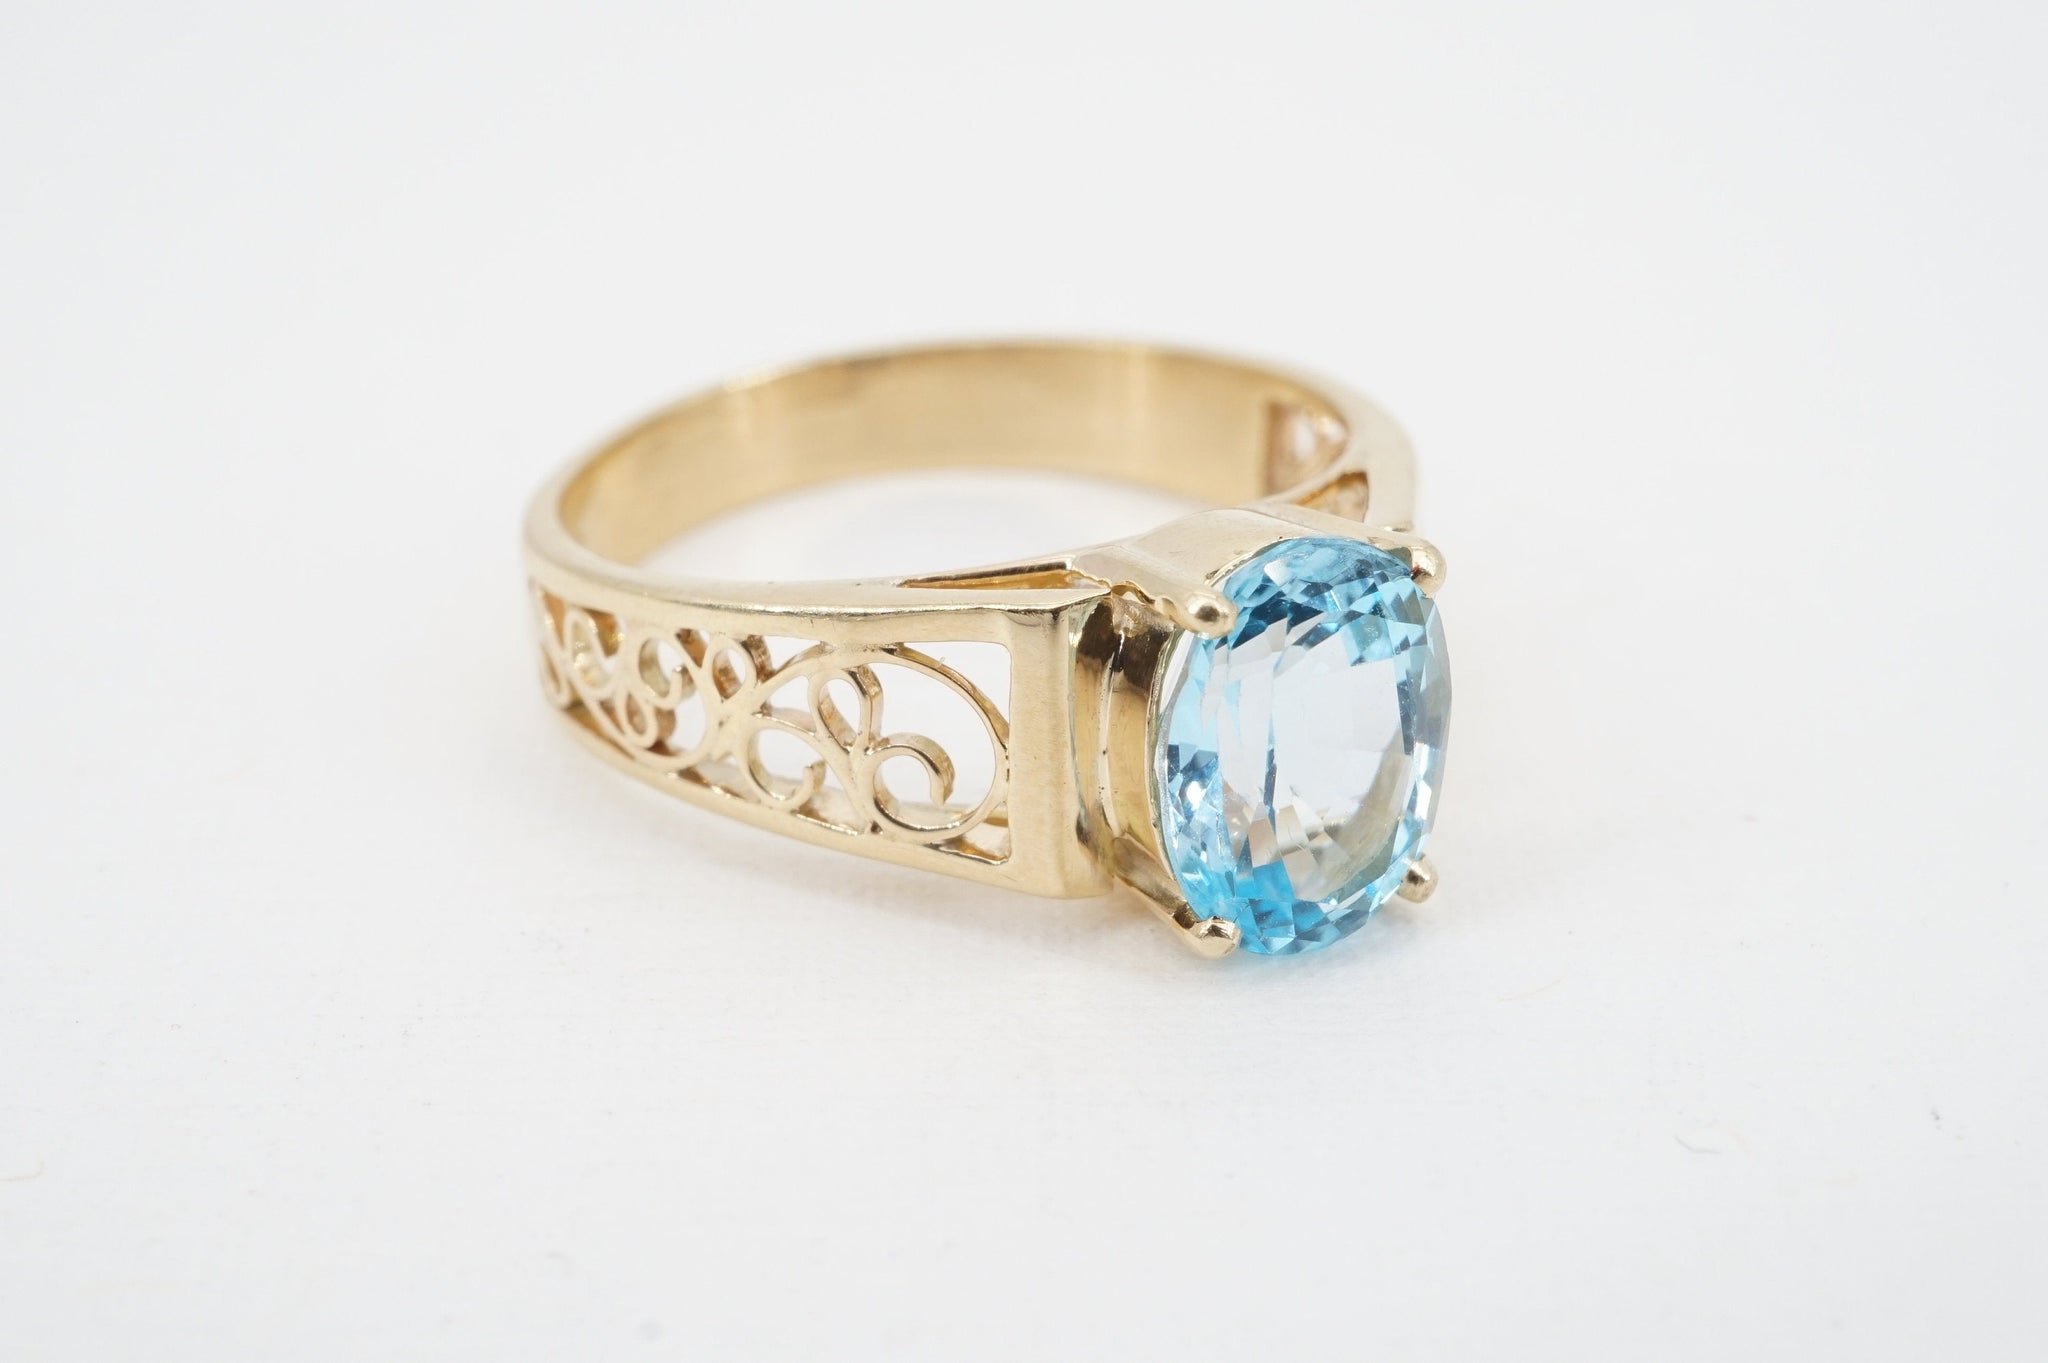 size 6 vintage 14k gold blue topaz ring - ww